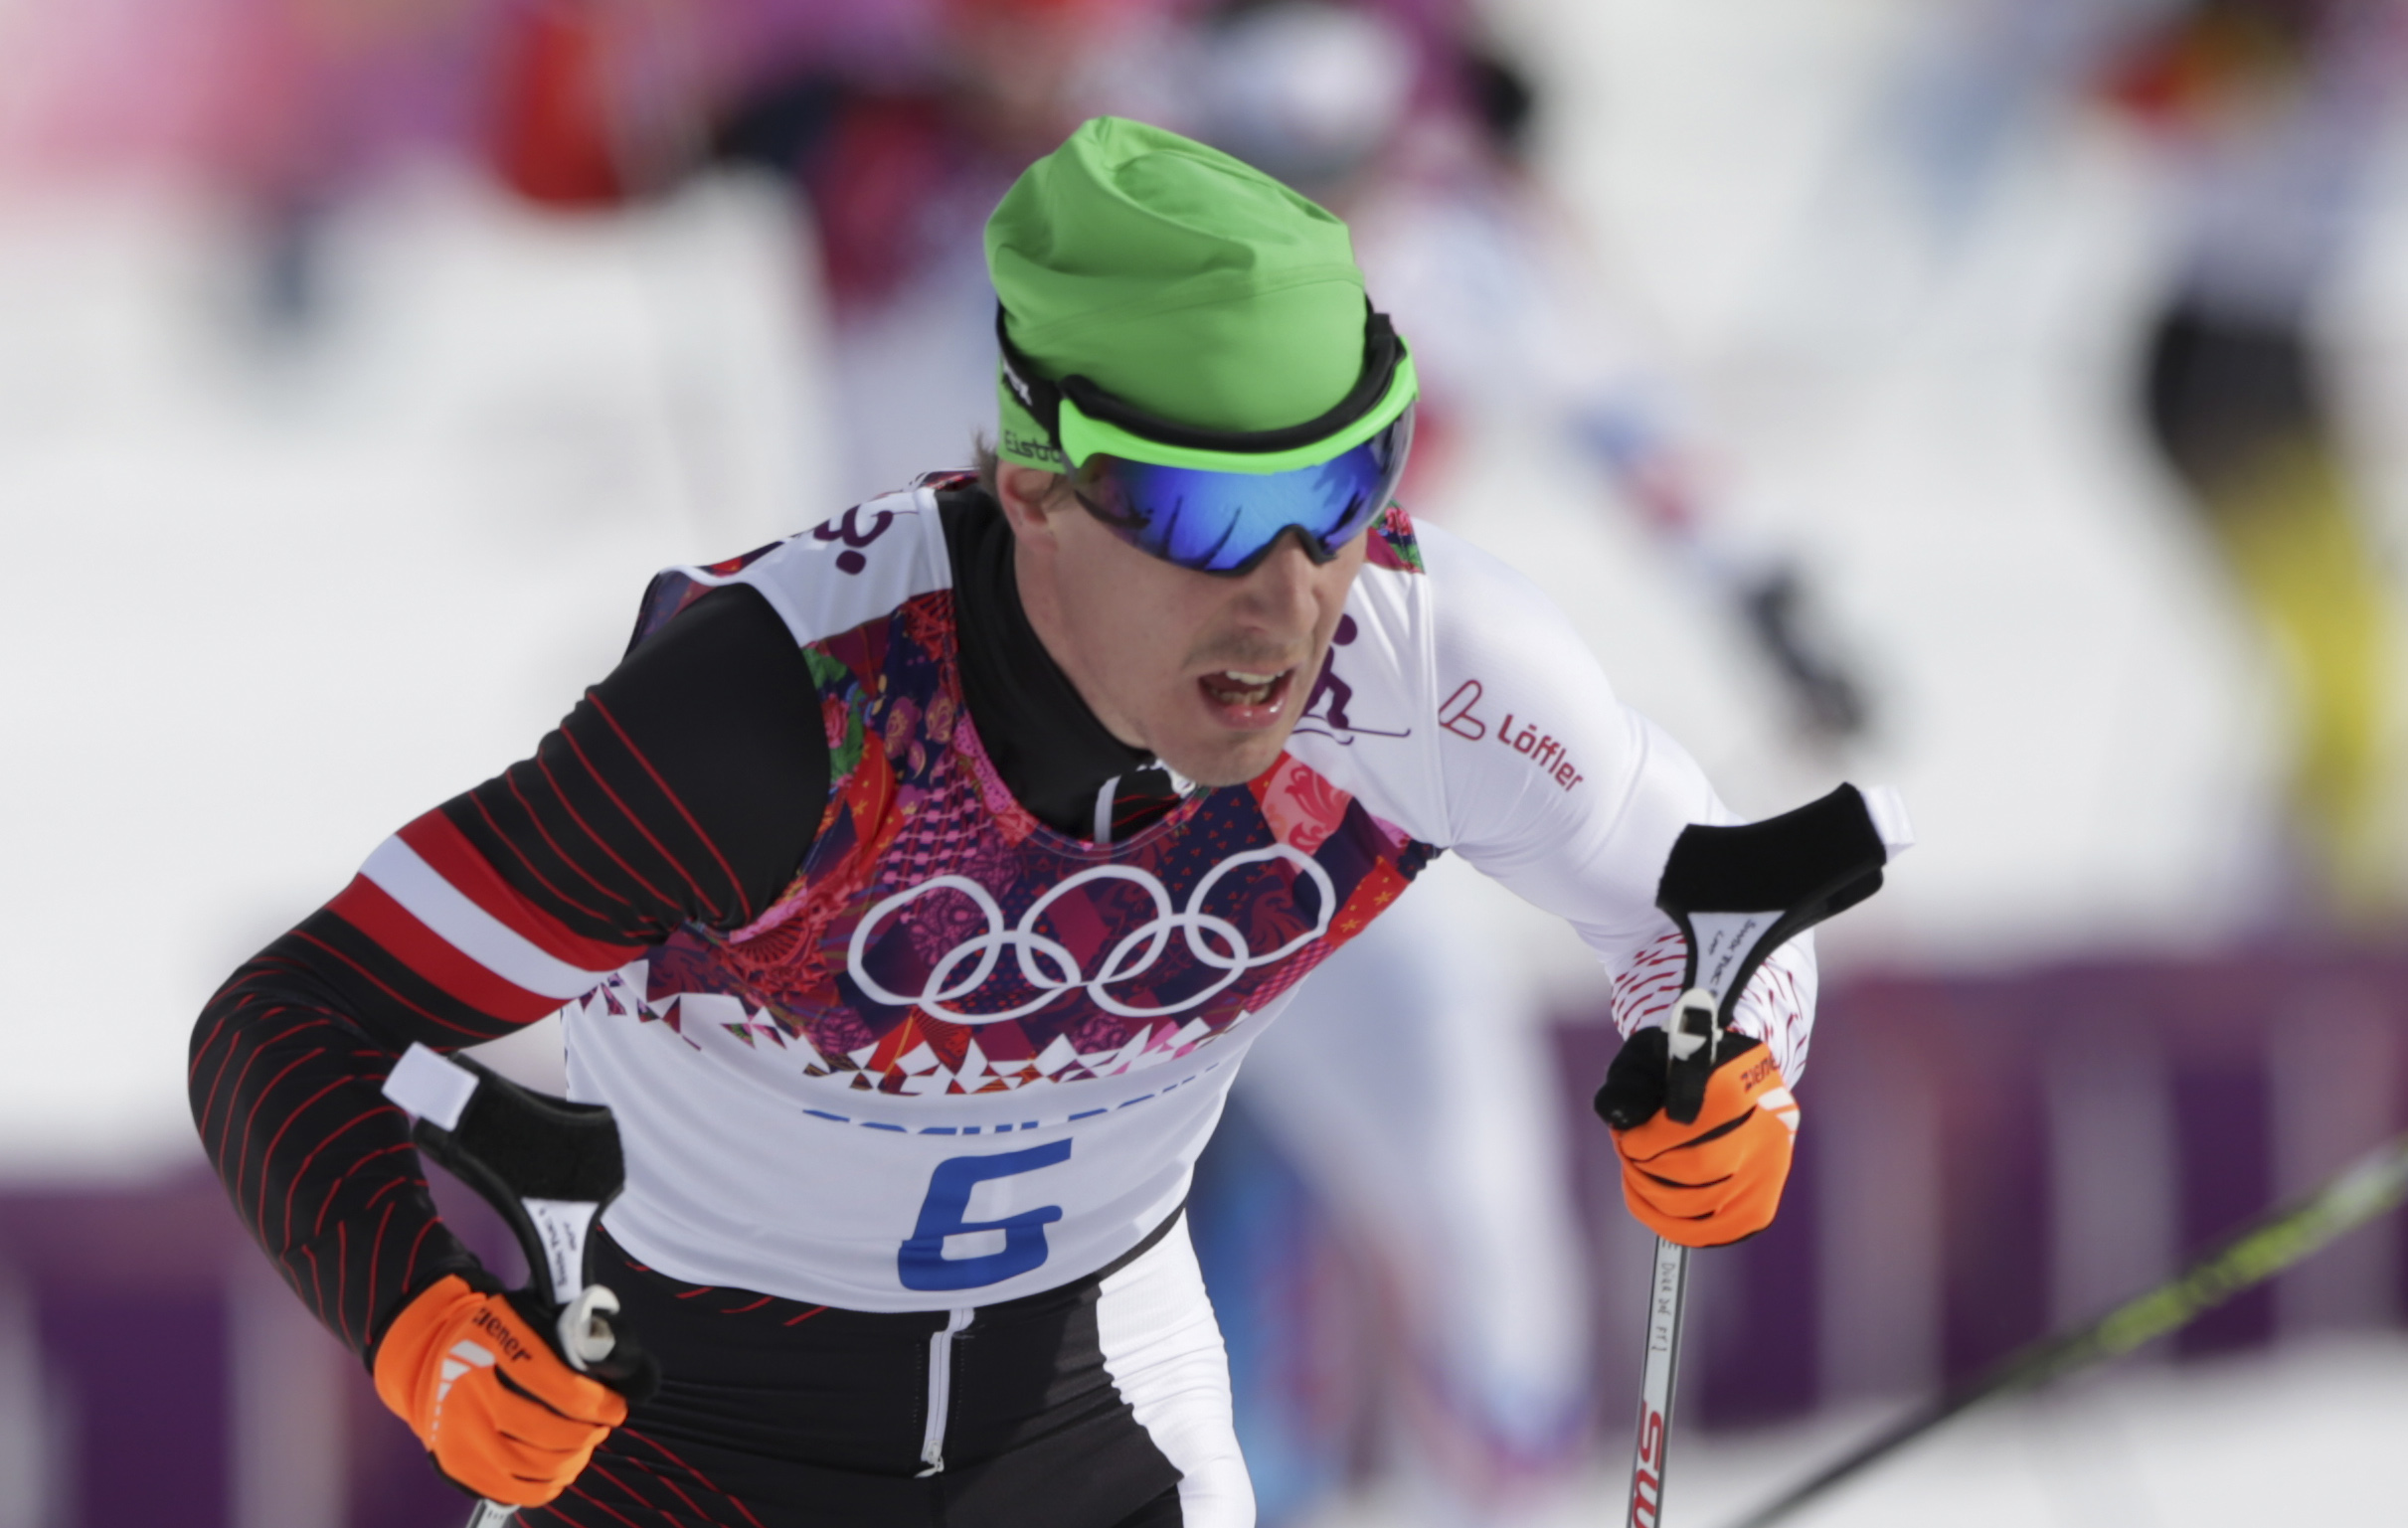 In this Feb. 9, 2014 photo Austria's Johannes Duerr competes during the men's cross-country 30k skiathlon at the 2014 Winter Olympics in Krasnaya Polyana, Russia. Duerr has been kicked out of the Sochi Games after testing positive for EPO, the country's Olympic committee said Sunday, Feb 23, 2014. It is the fifth doping case of the Olympics and the first involving the blood-boosting drug EPO. (AP Photo/Matthias Schrader)